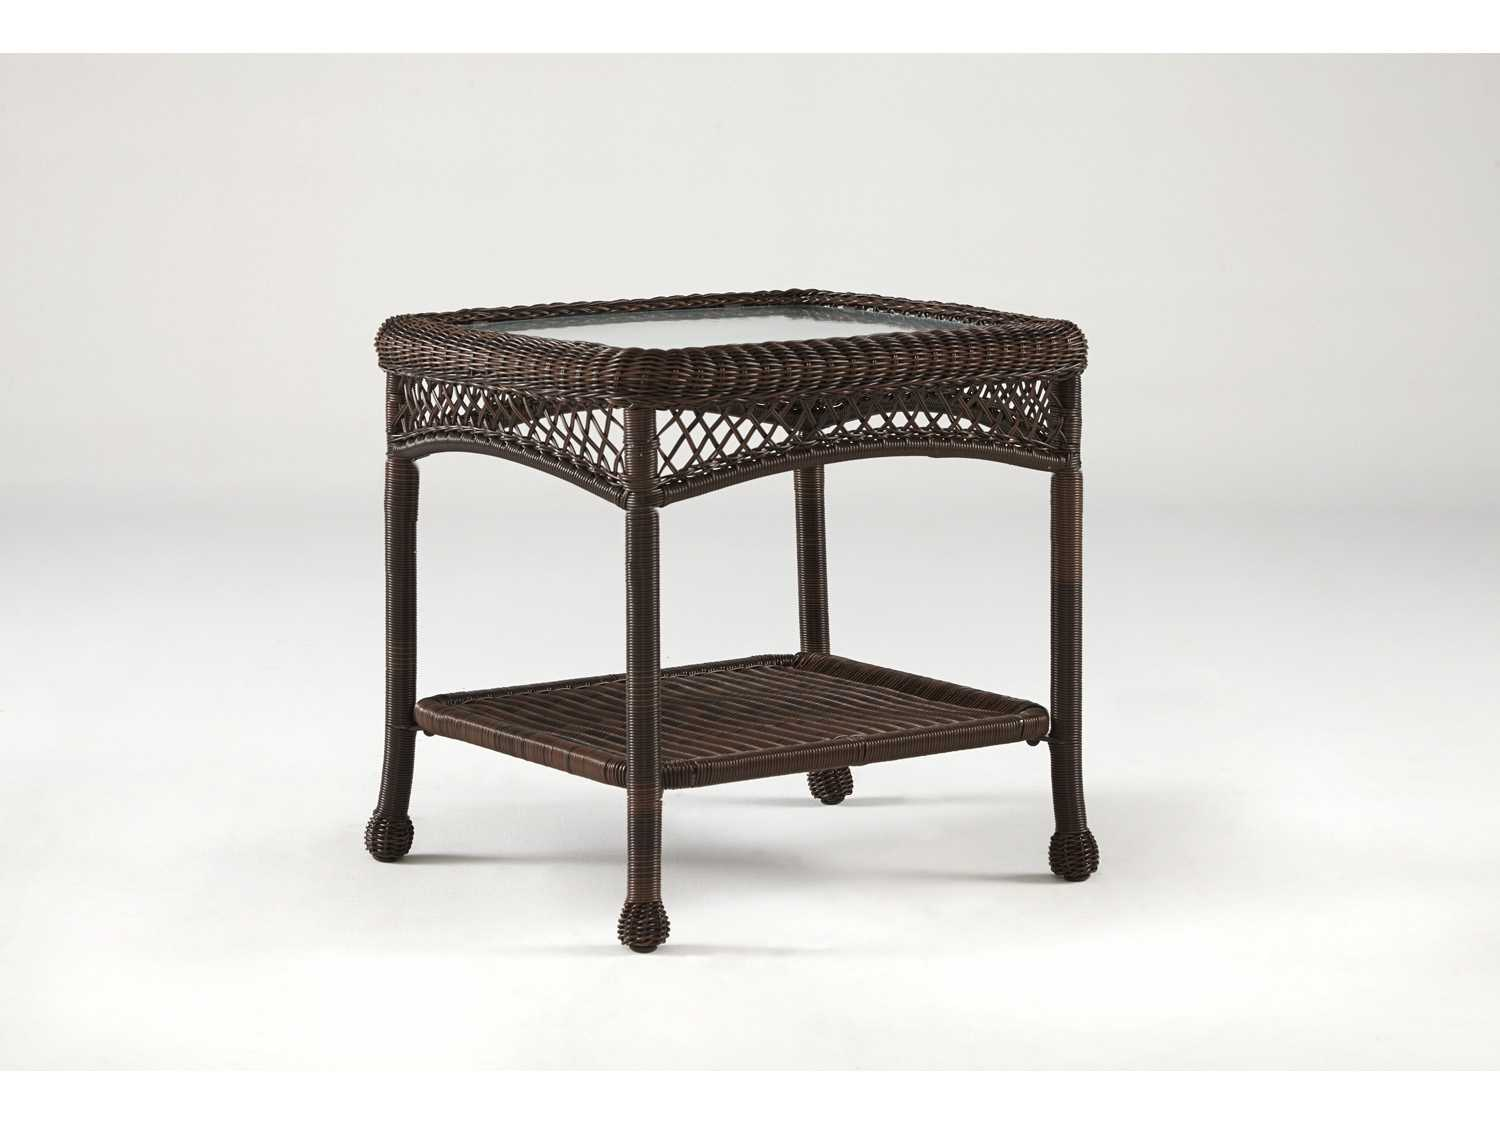 South Sea Rattan Montego Bay Wicker 24 X 22 Rectangular